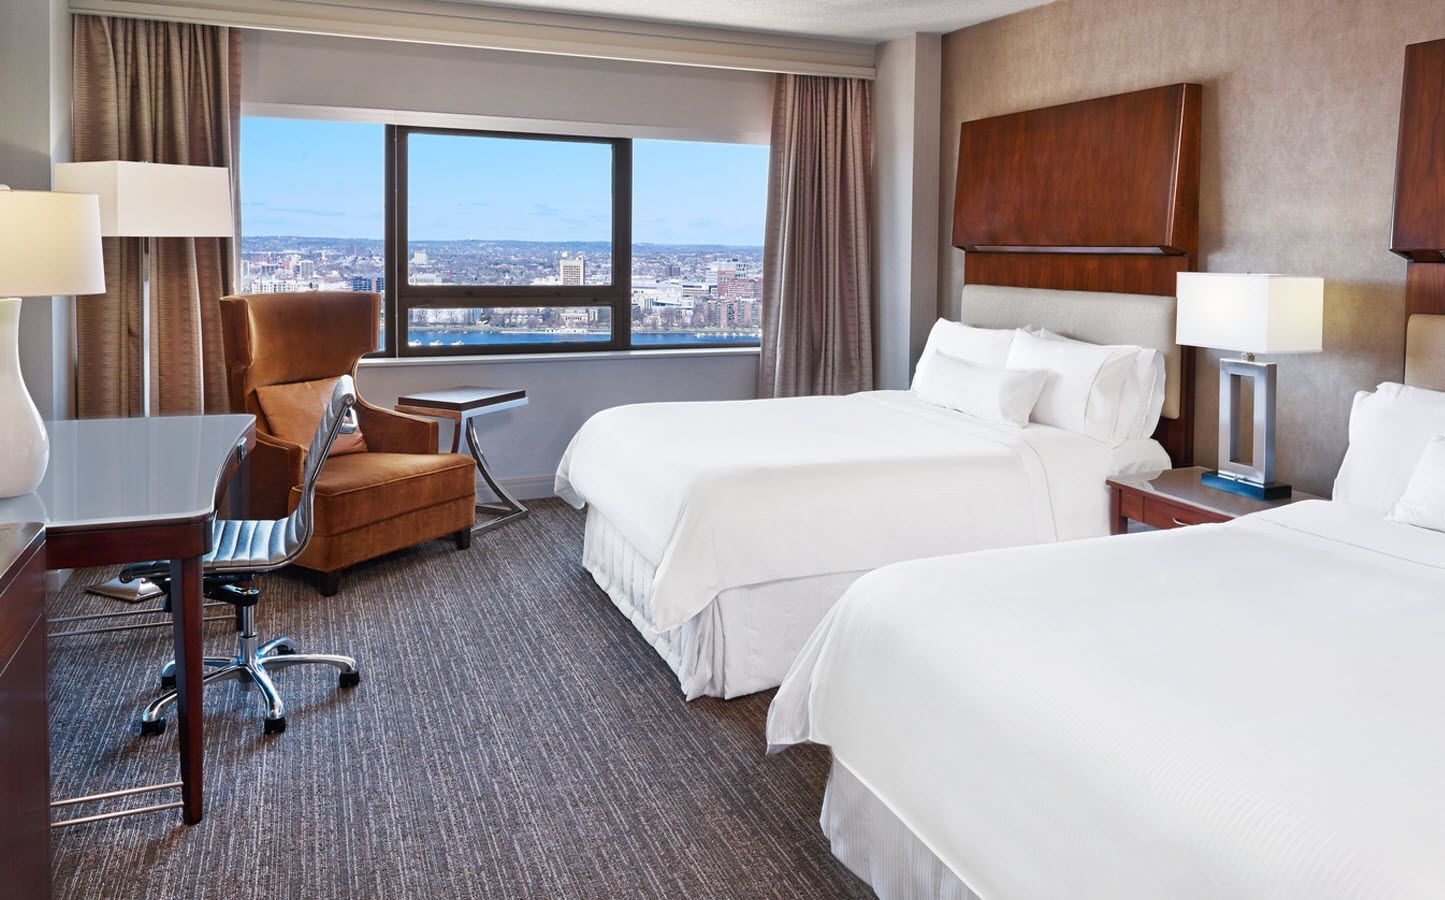 Deluxe Guest Room | The Westin Copley Place, Boston